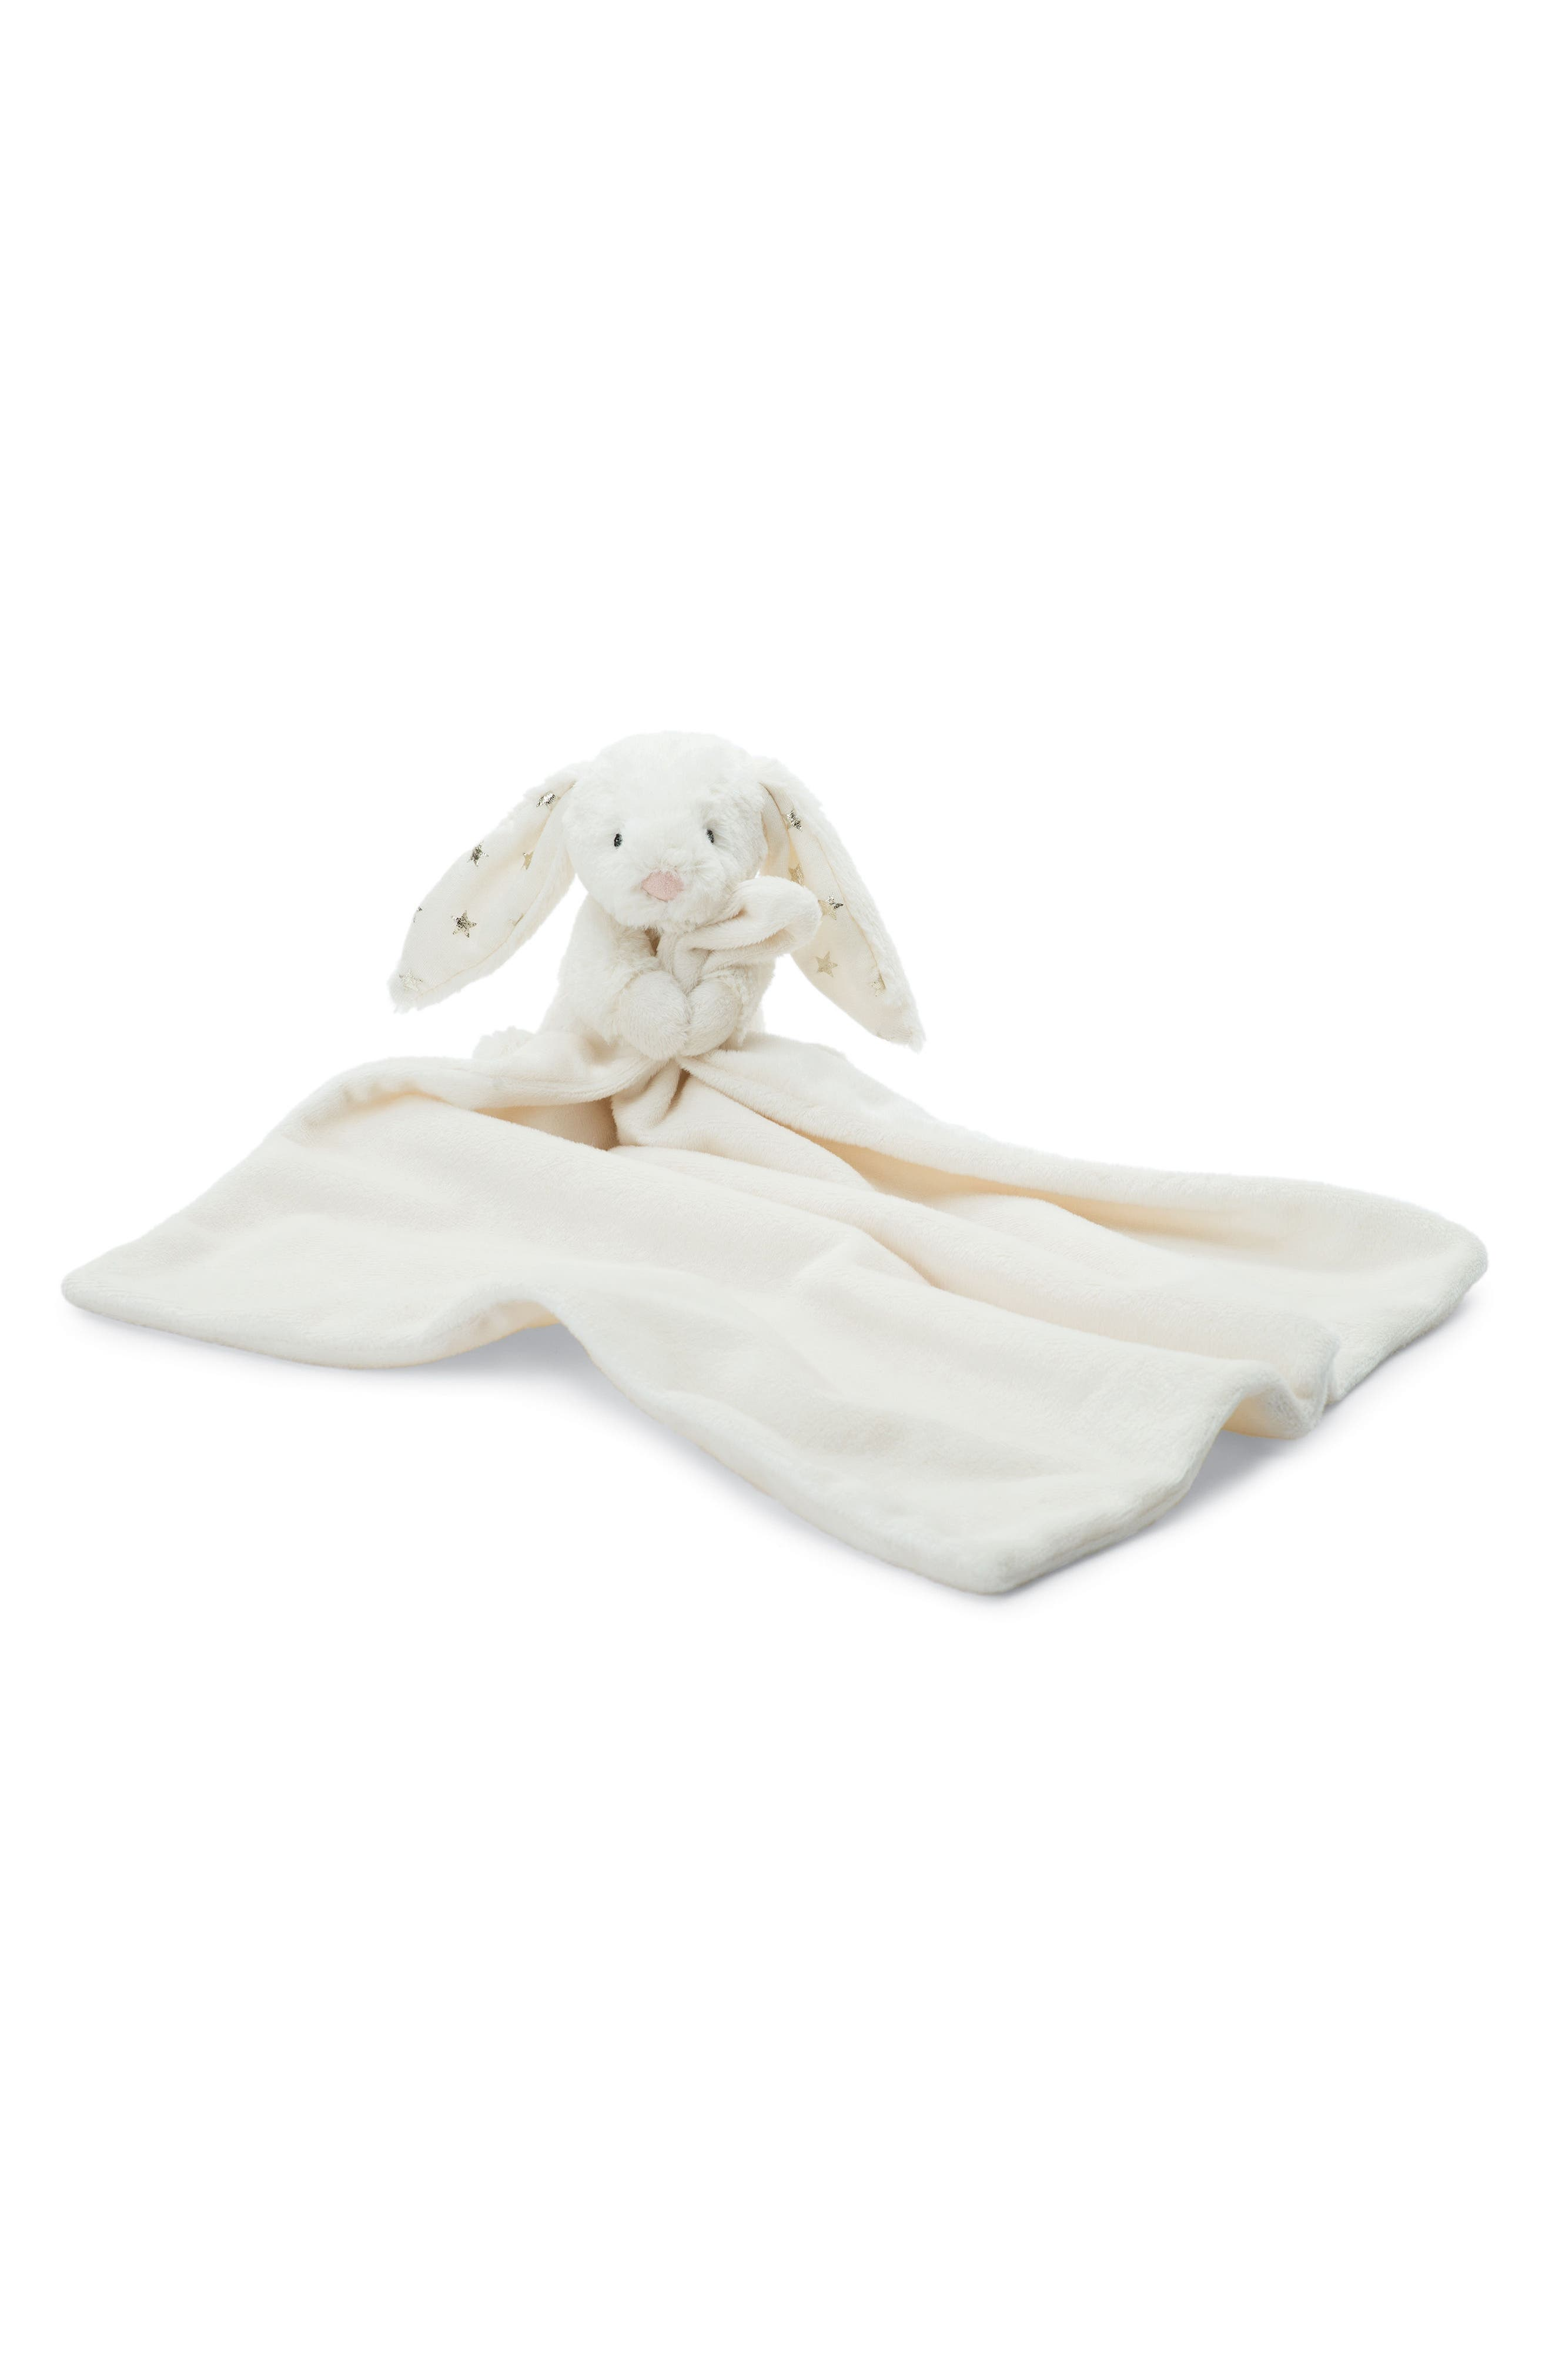 Twinkle Bunny Soother Blanket,                             Main thumbnail 1, color,                             Cream